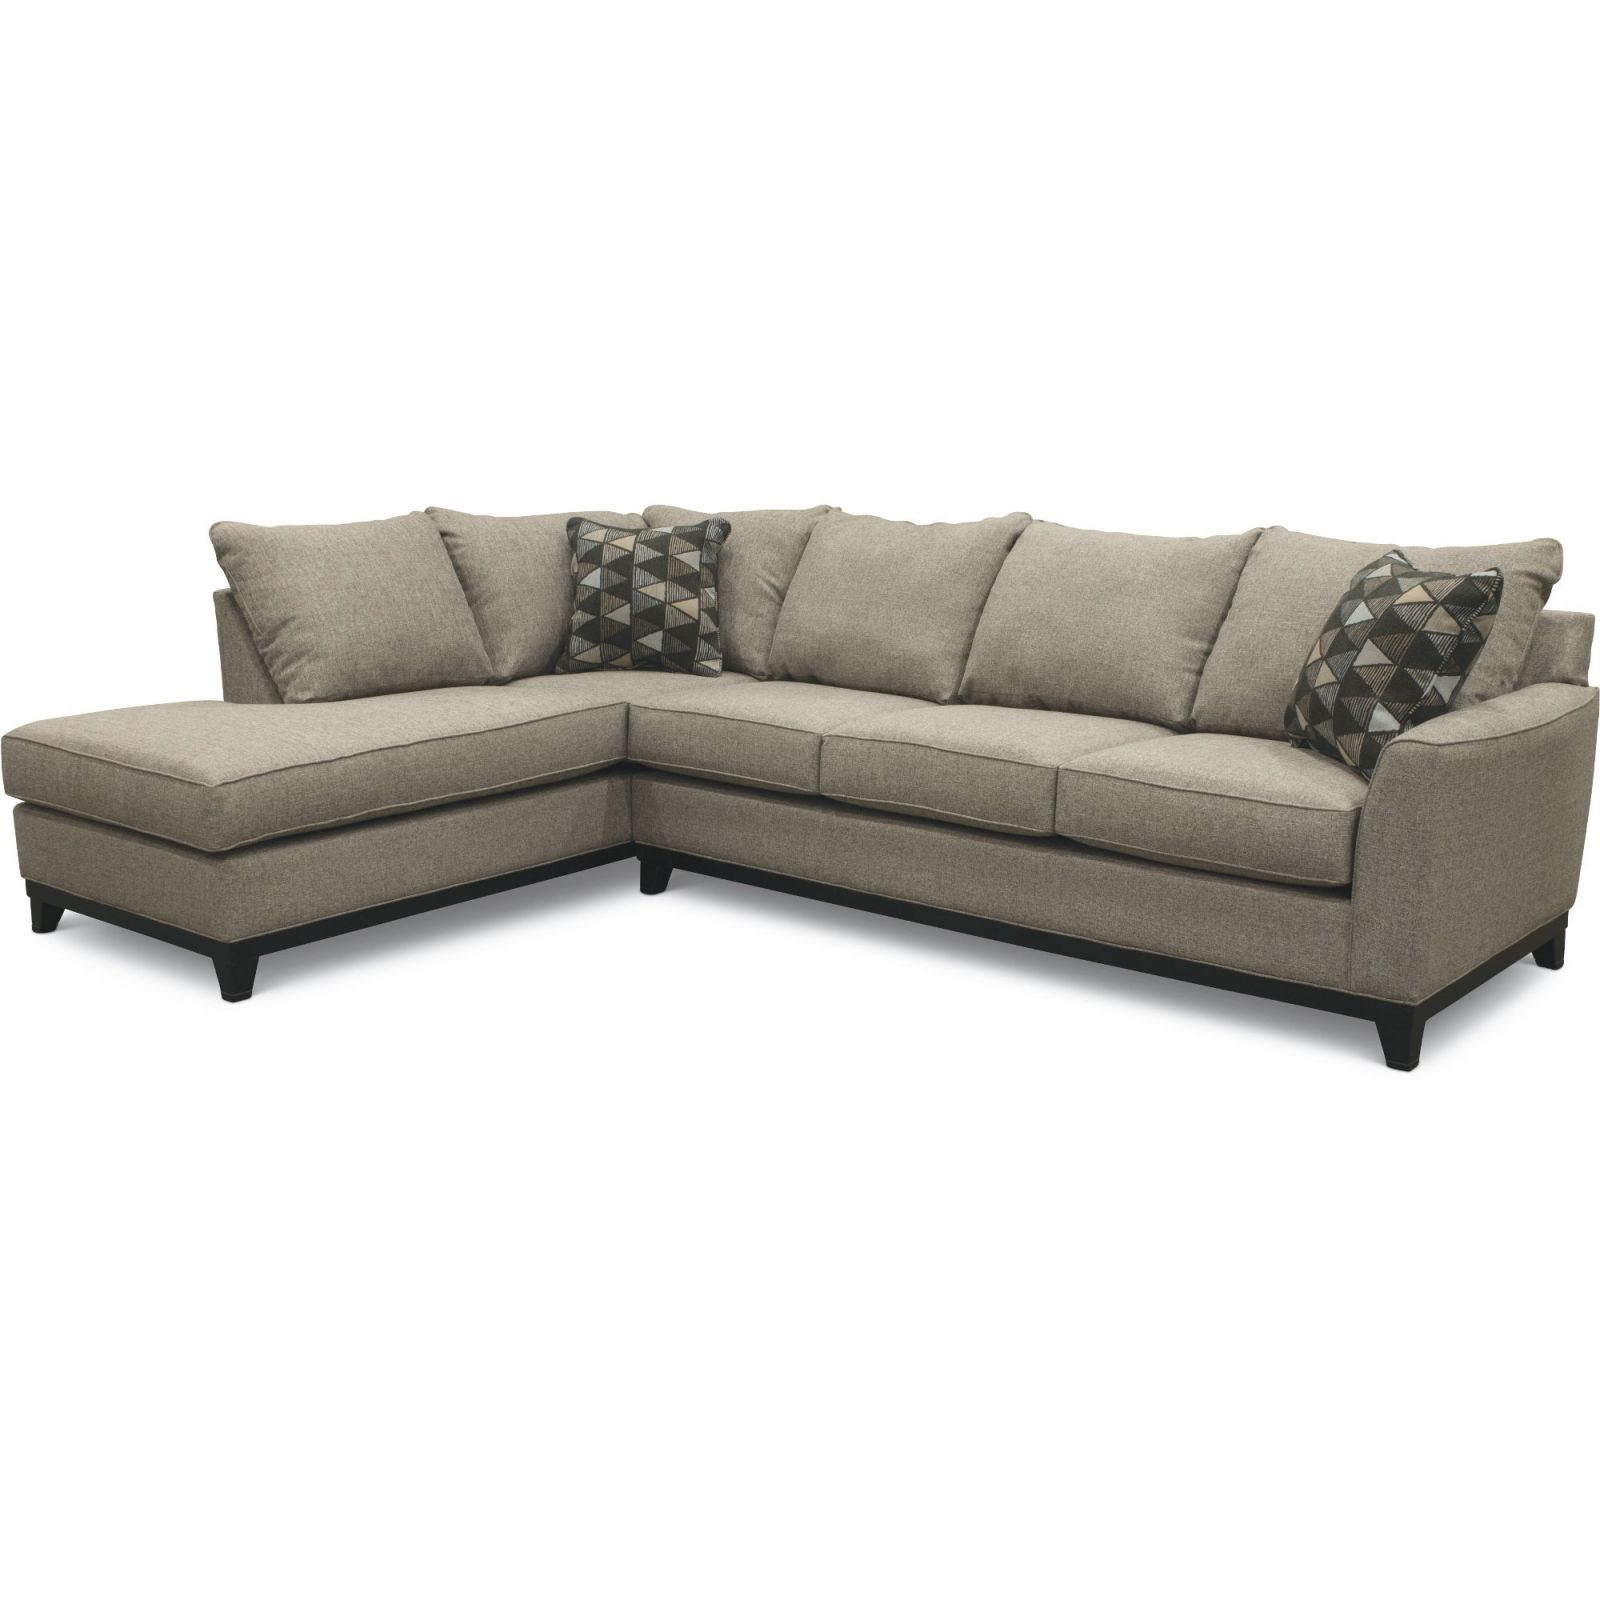 Slate Gray 2 Piece Sectional Sofa With Laf Chaise Intended For Elegant Sectional Sofas (View 14 of 15)